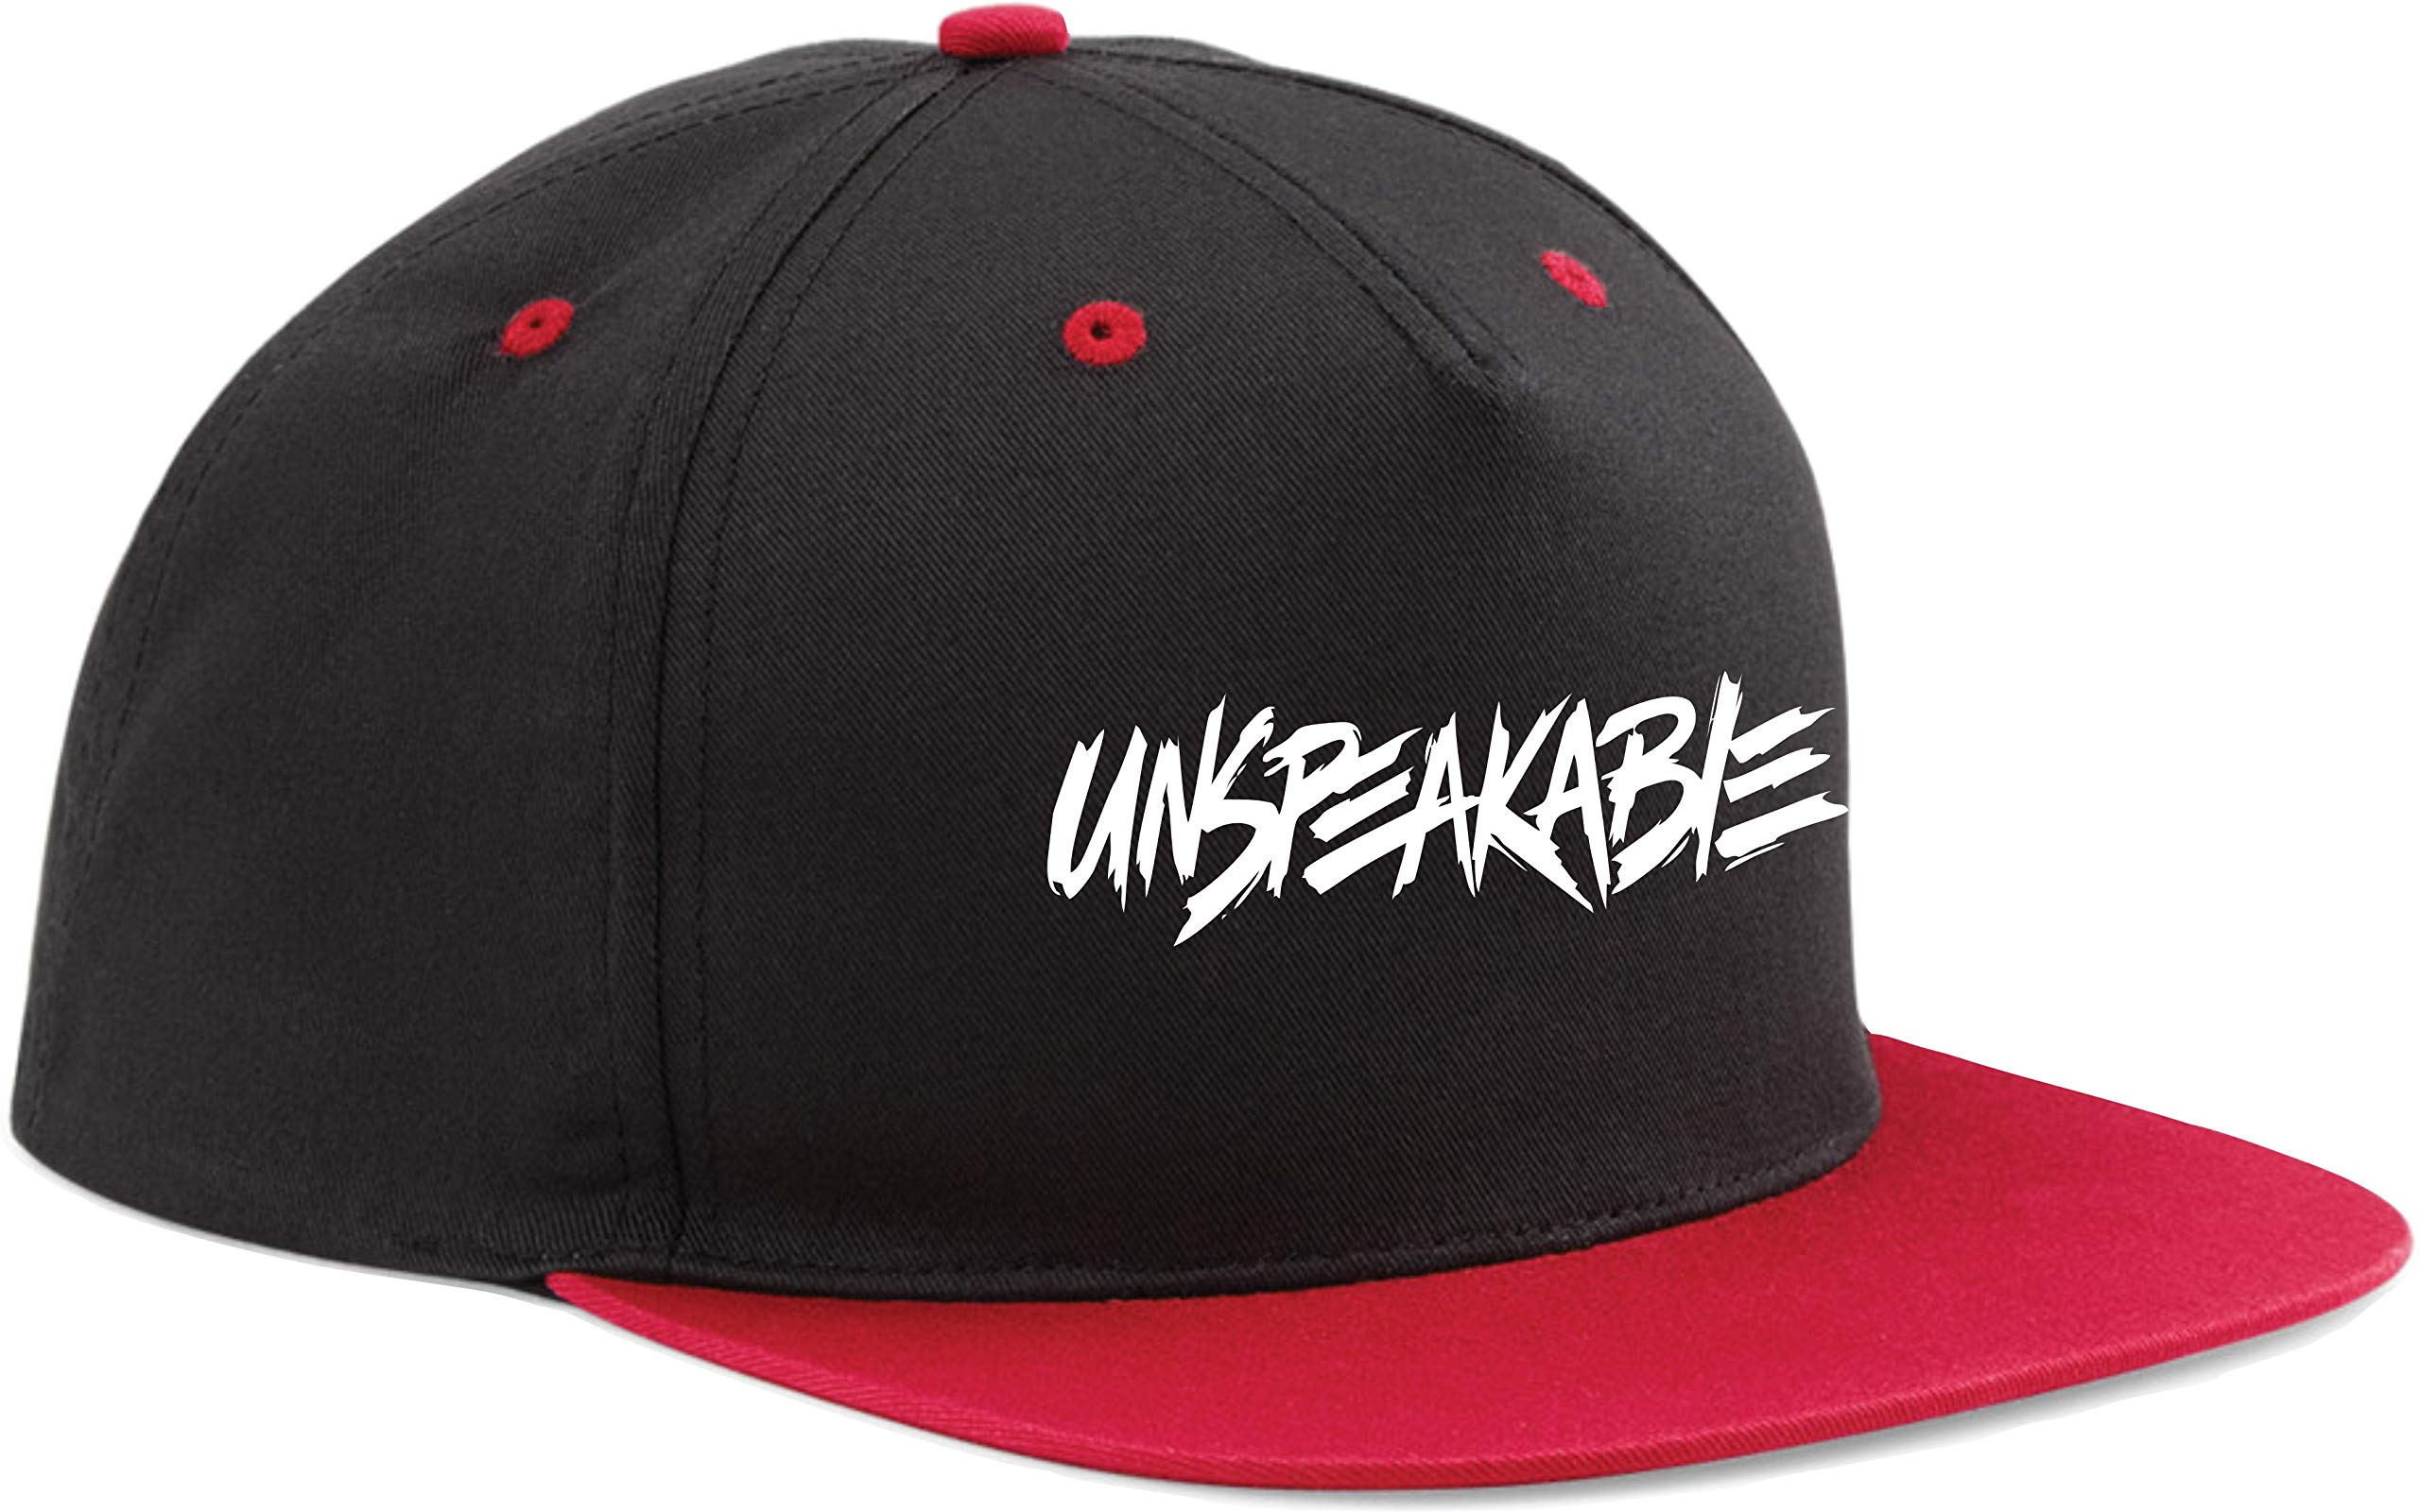 Unspeakable Merch